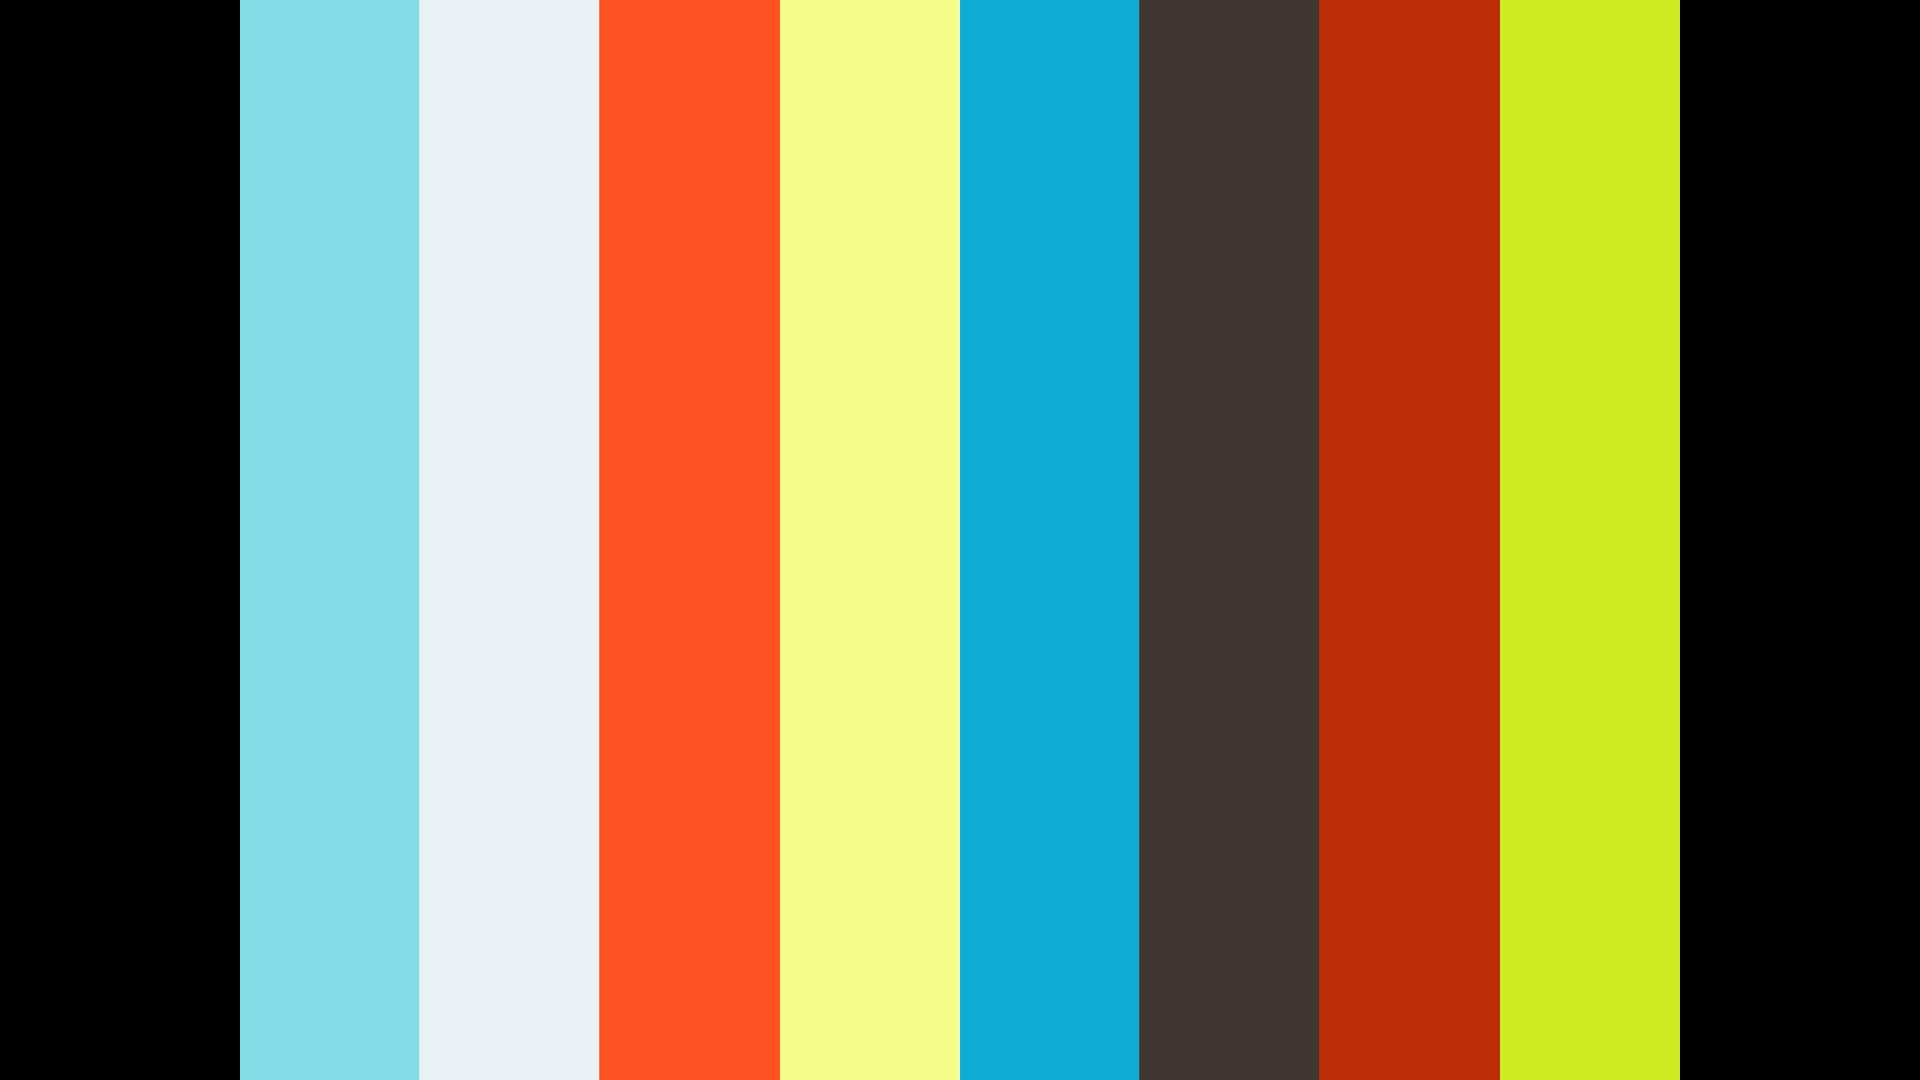 Whitworth Young Contemporaries present: Fatima and the Whitworth